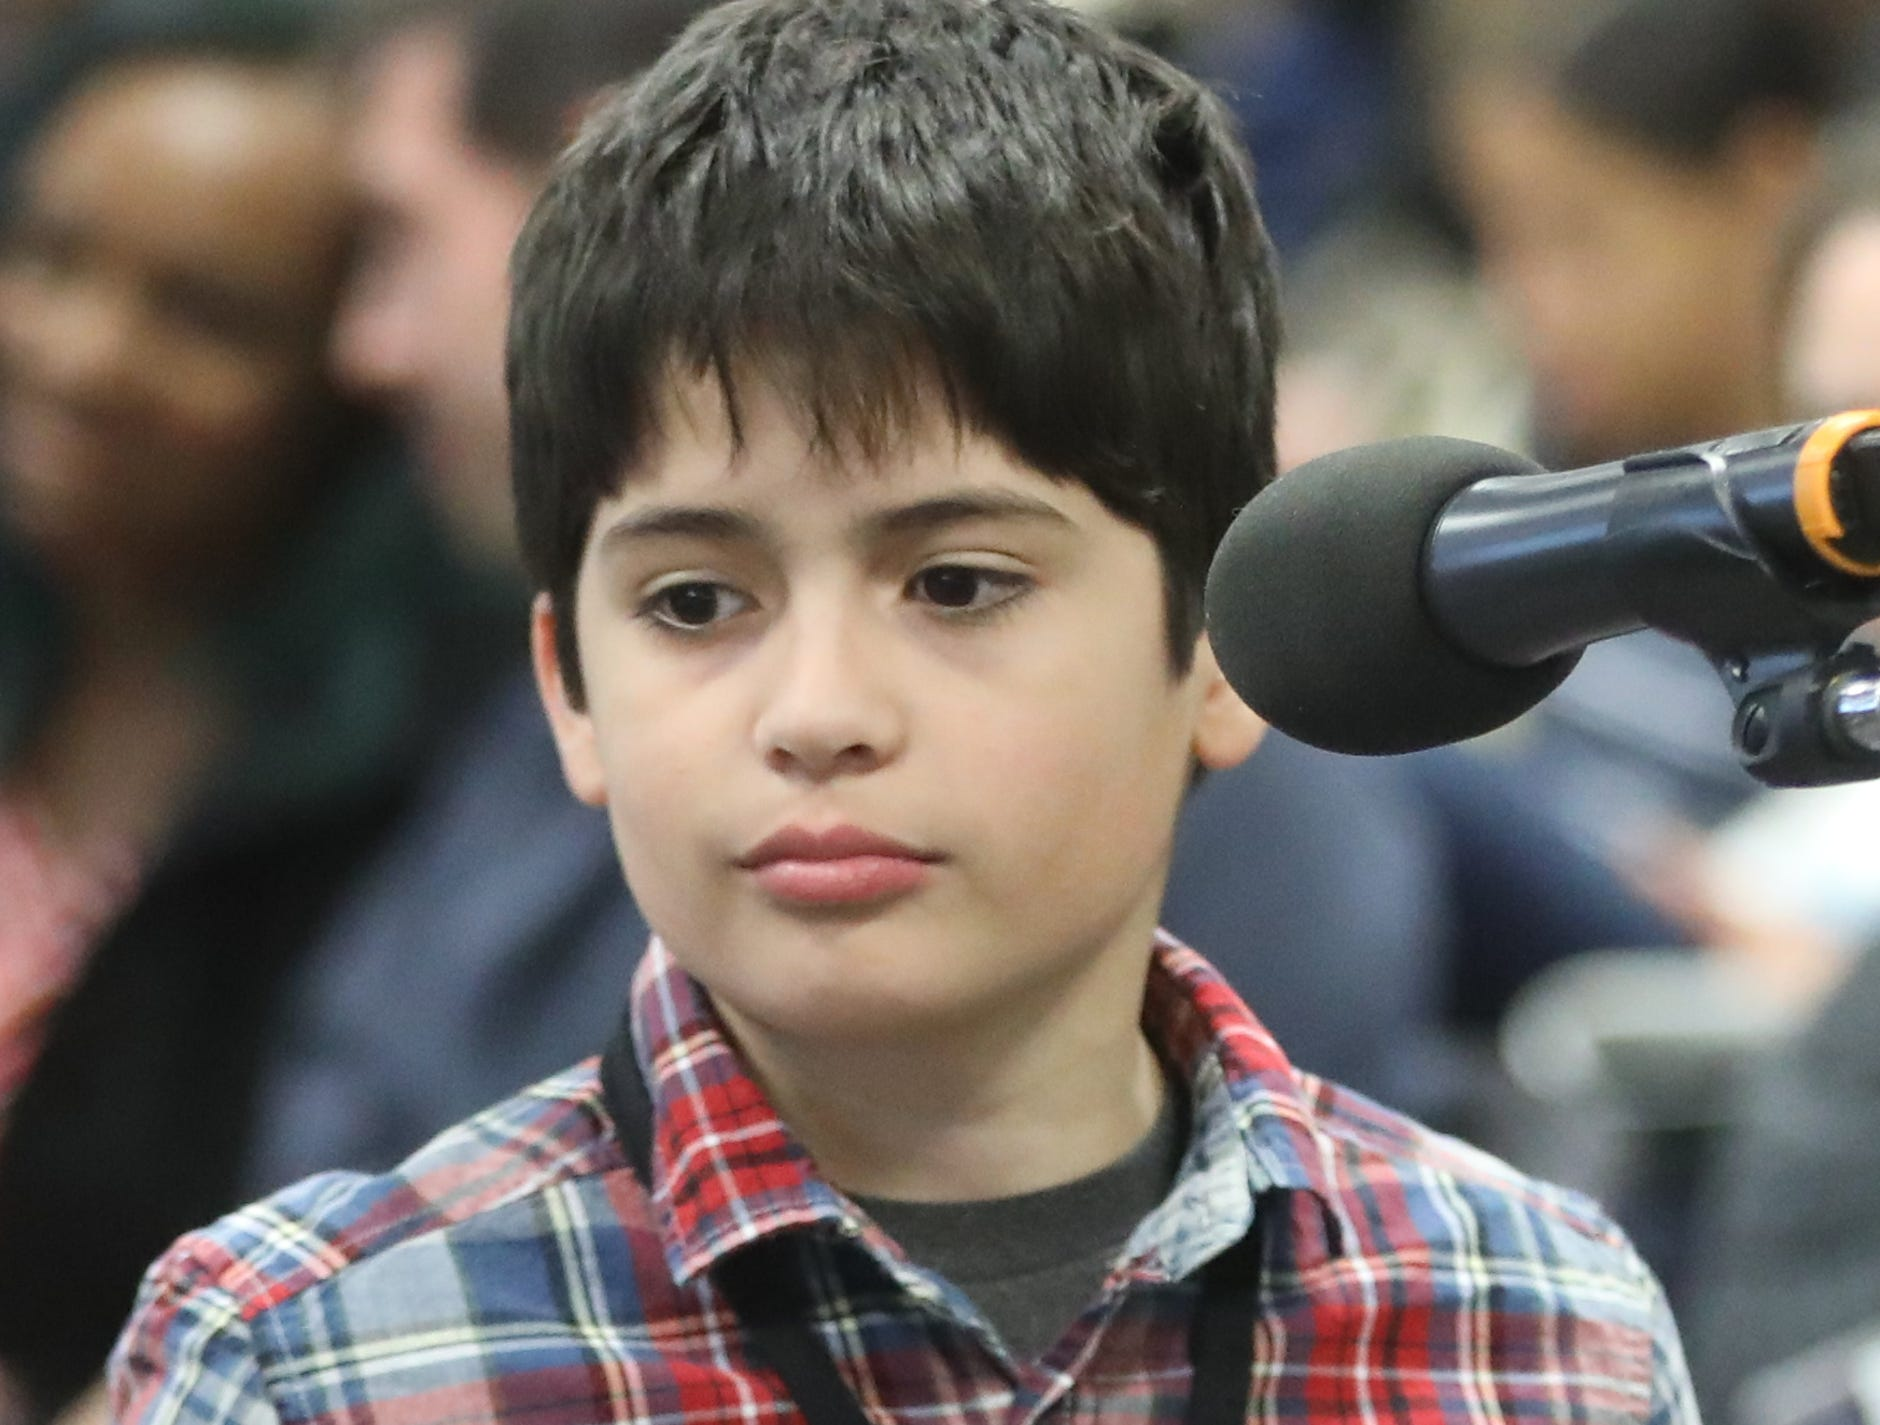 Wilson Velez, of Garfield, competes in the first round of the 2019 North Jersey Spelling Bee, in Paramus. Thursday, March 14, 2019